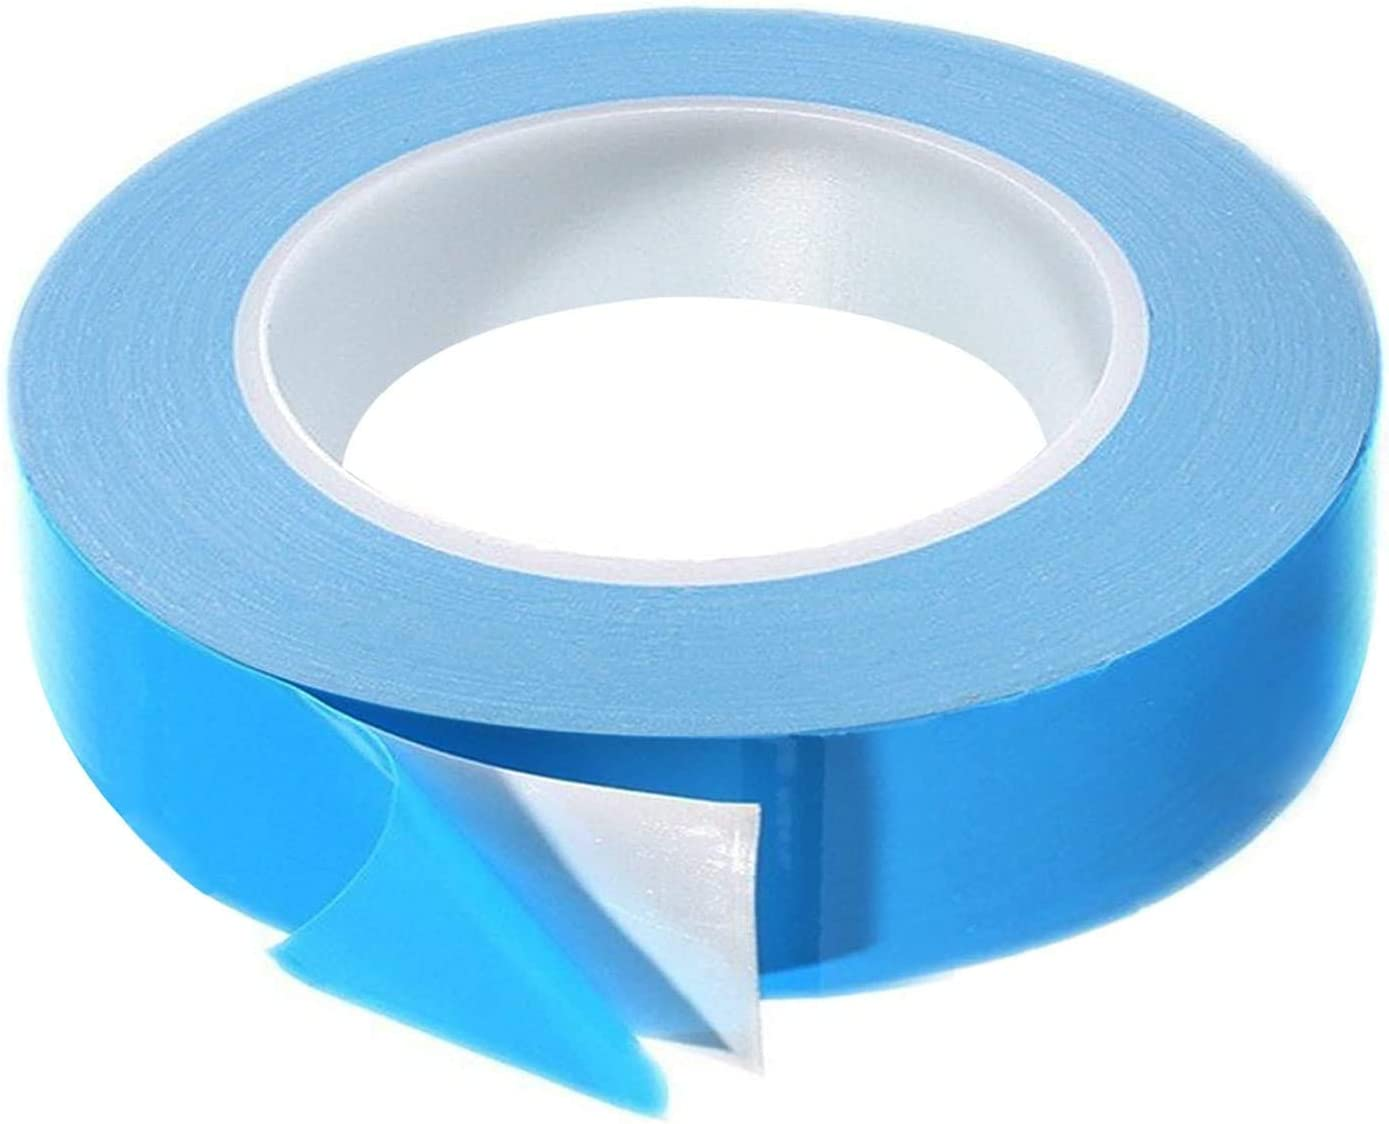 Thermal Adhesive Tape, 25m x 15mm x 0.20mm High Performance Double Side Thermal Tapes Cooling Pad Apply to Heatsink, LED, IGBT, IC Chip, Computer CPU,GPU, Modules, MOS Tube, SSD Drives